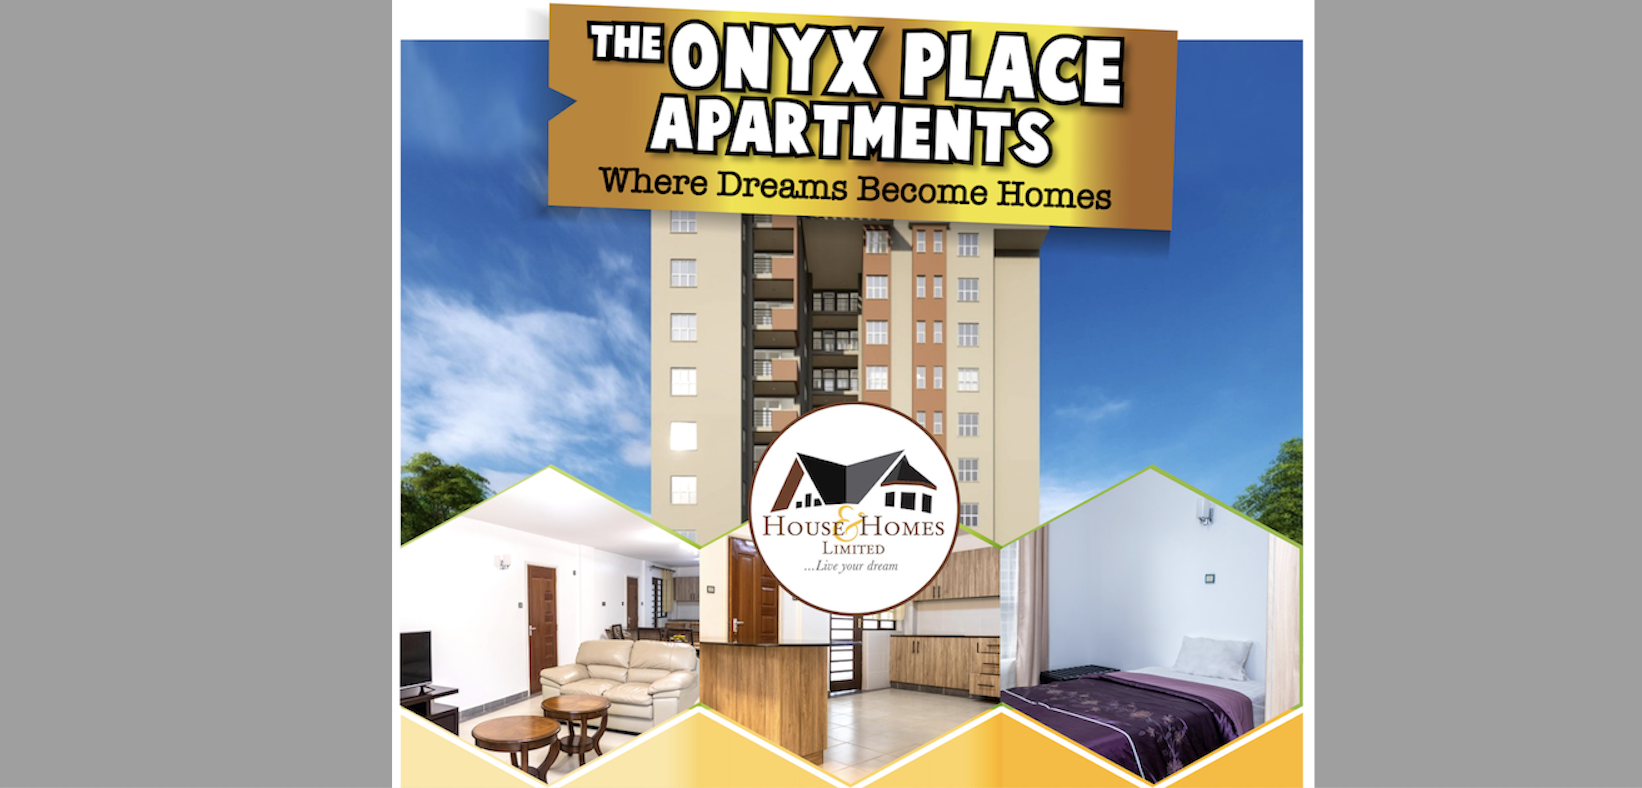 Introducing The Onyx Place Apartments: A Contemporary Urban Development along Waiyaki Way